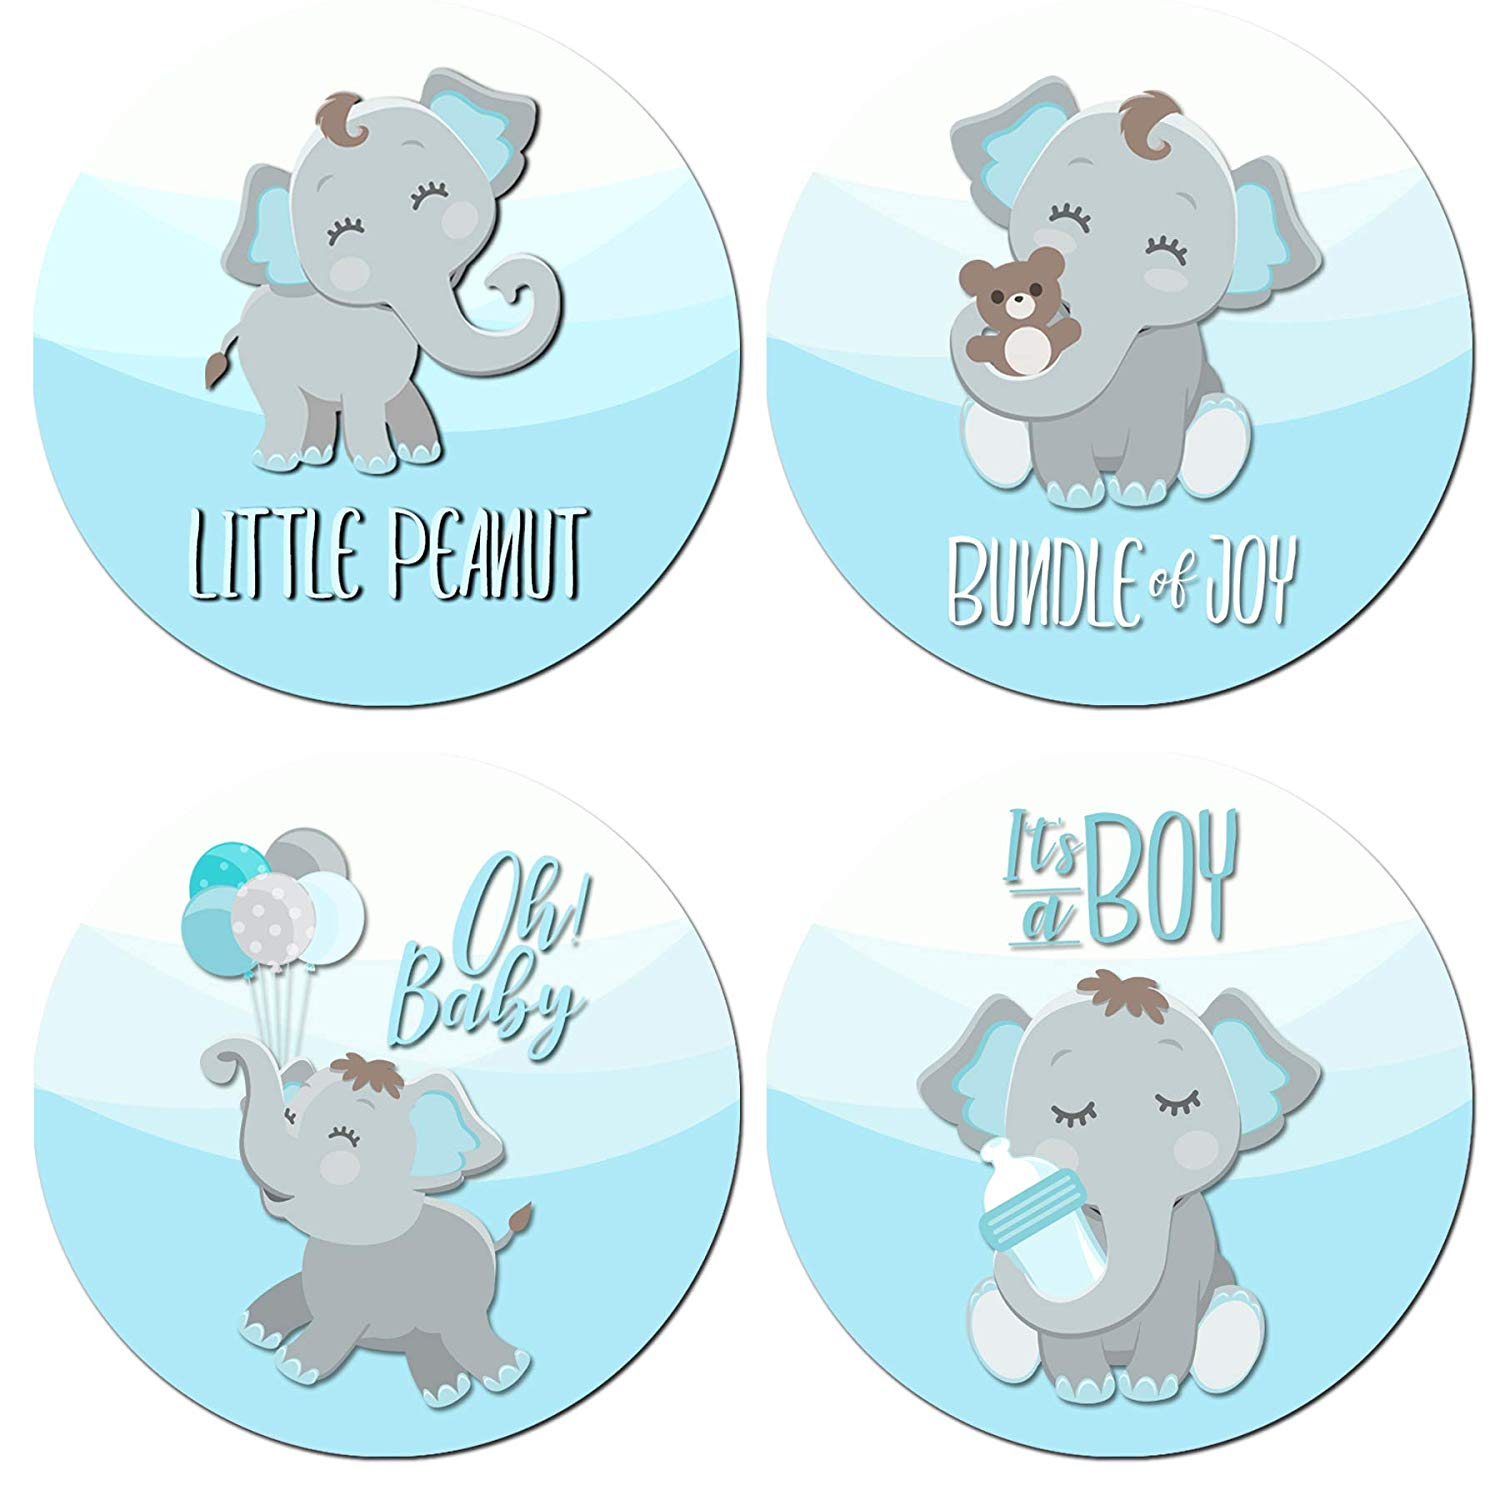 Pink and gray elephant baby shower clipart clip art transparent library Amazon.com: Elephant Baby Shower Stickers | Many Sizes ... clip art transparent library